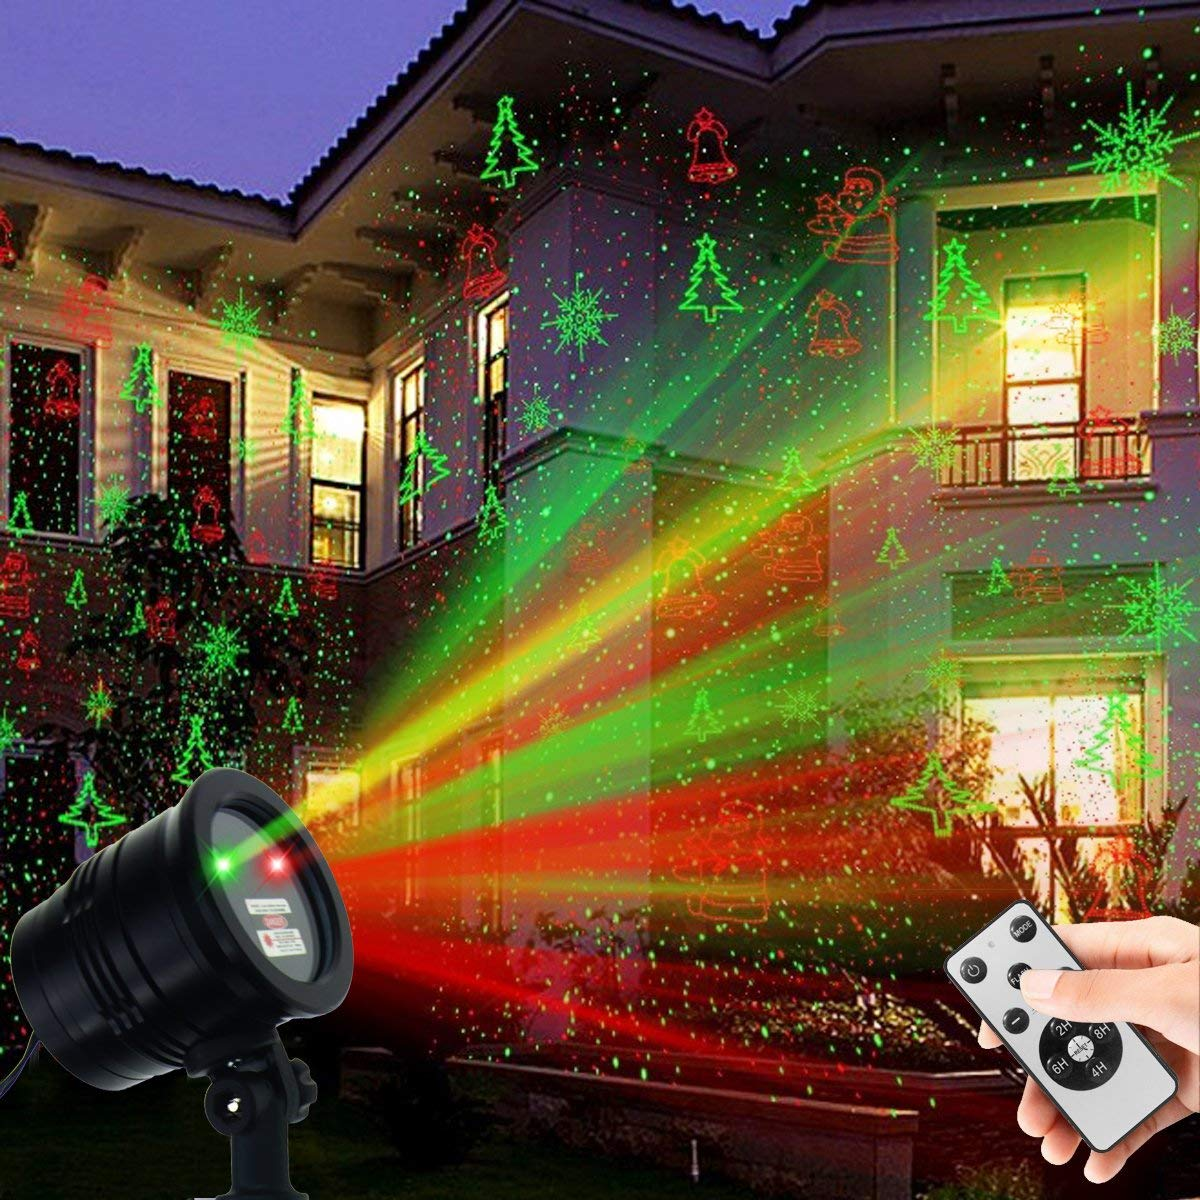 Laser Light Christmas Tree: Christmas Projection Lights, Your Thoughts?